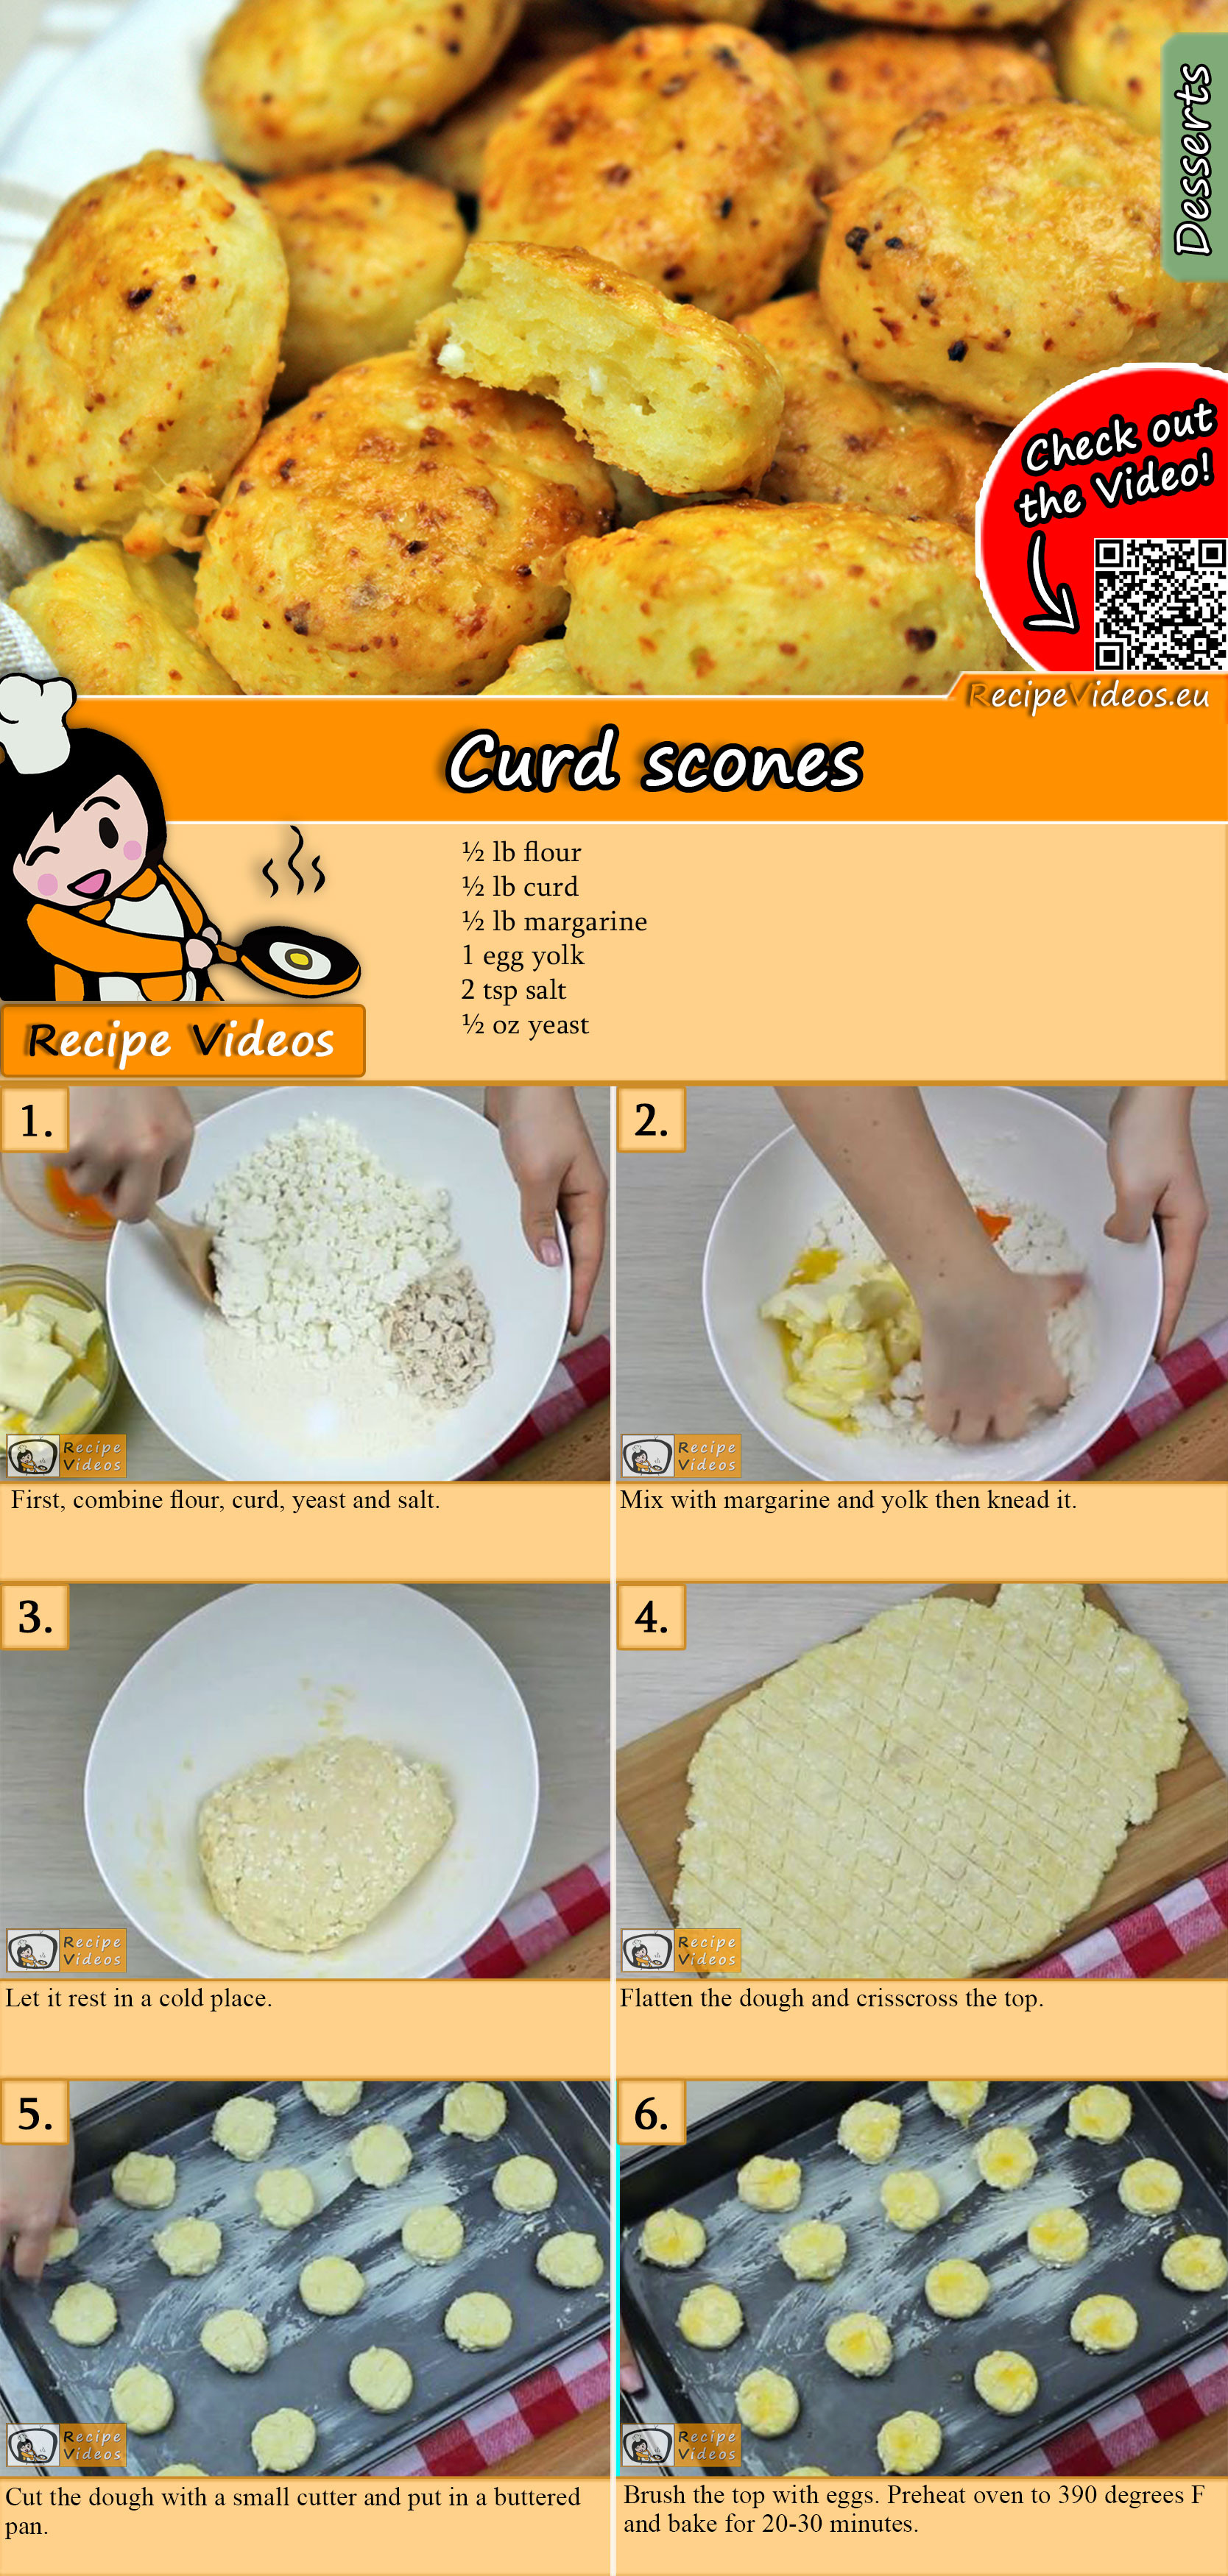 Curd scones recipe with video